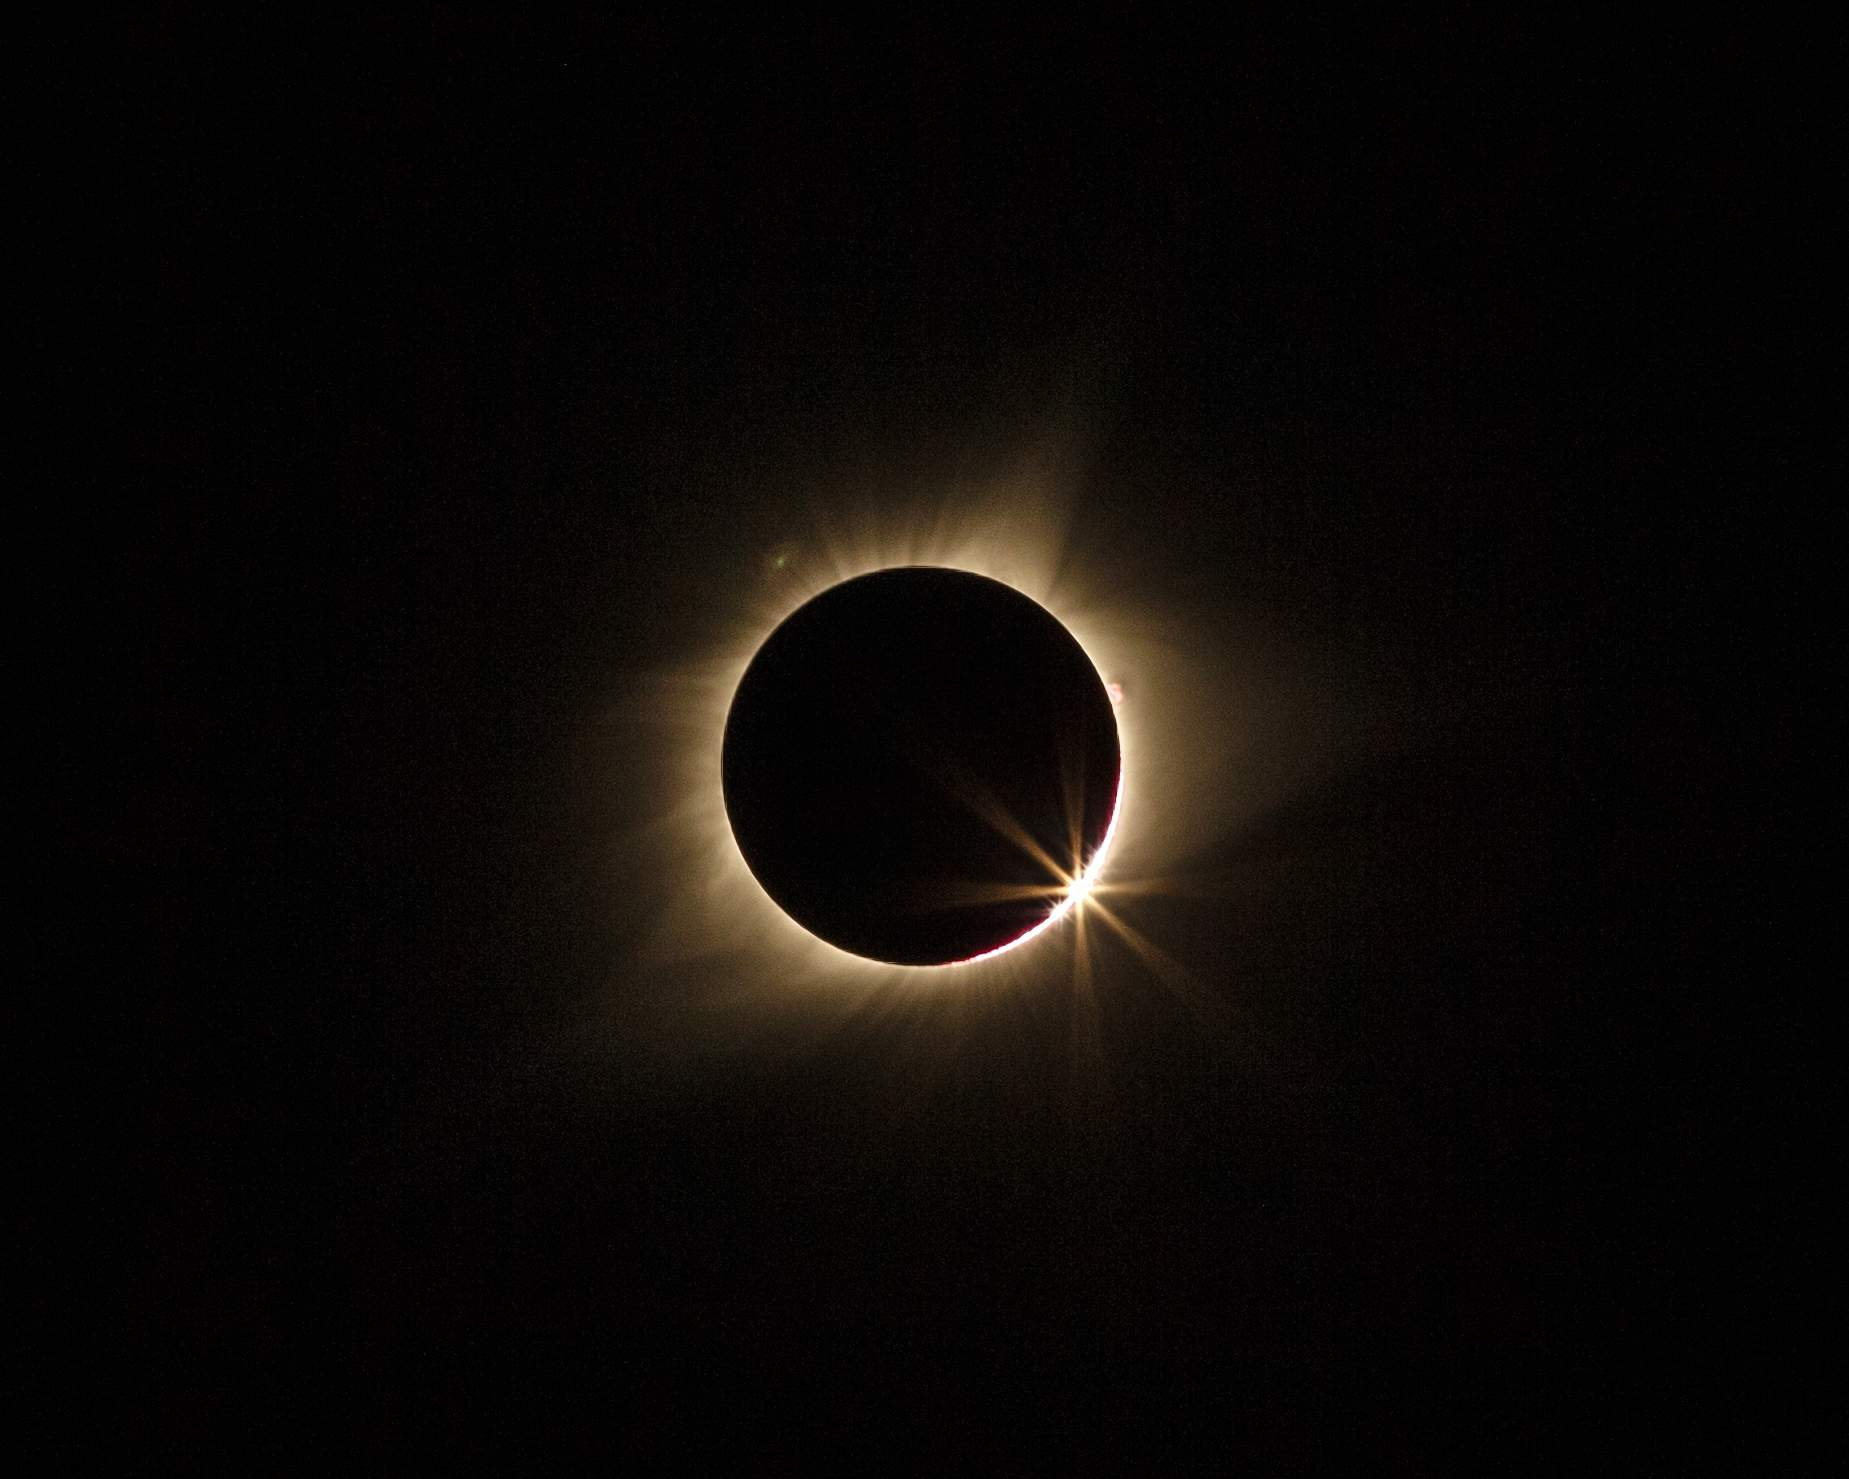 A view of the 'diamond' ring' just before the total eclipse from Independence. [John Howe/Special to The Examiner]